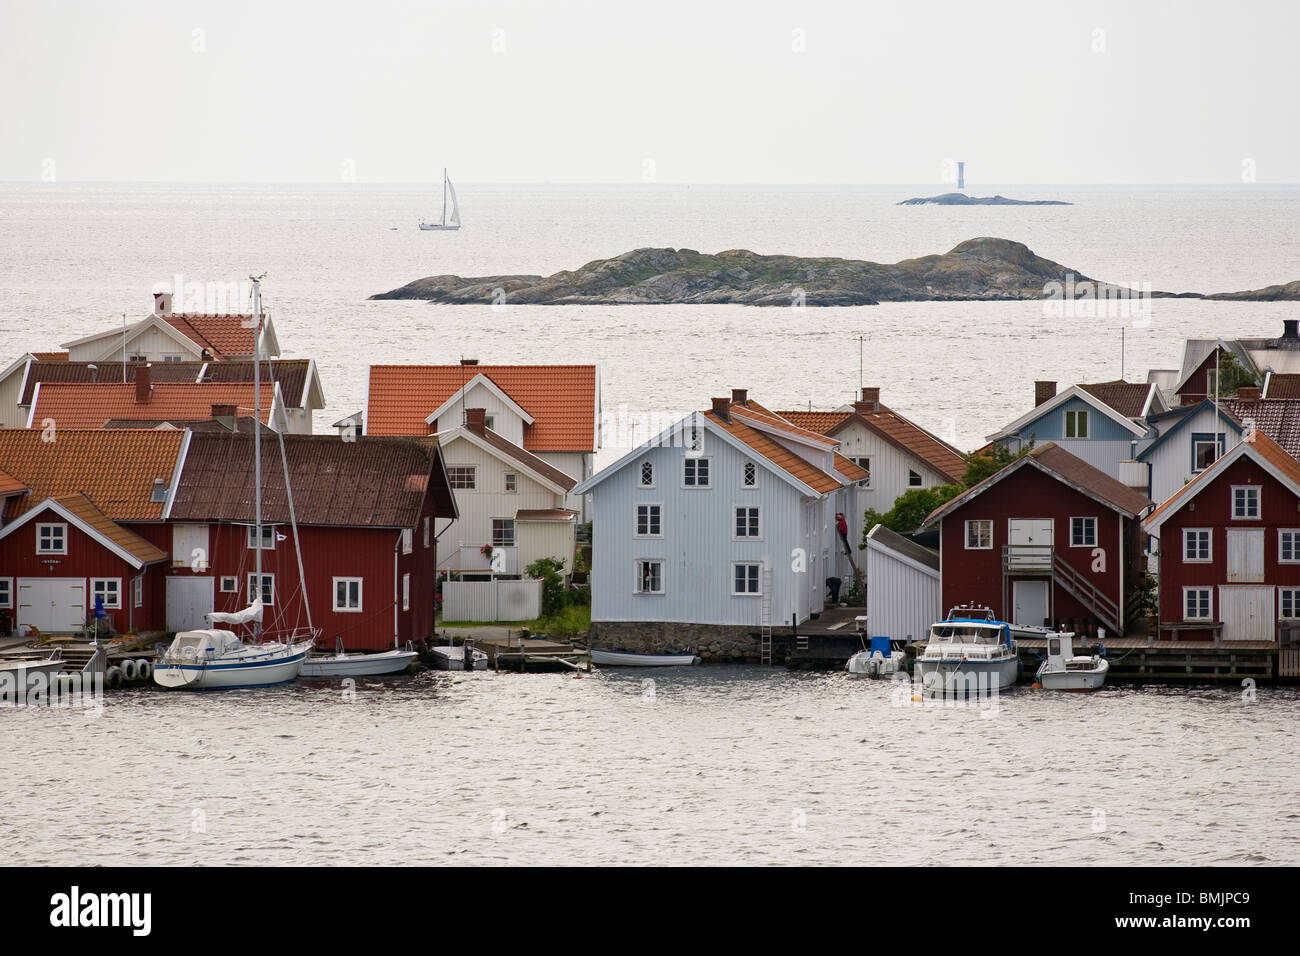 Scandinavia, Sweden, Bohuslan, View of residential structure with boats in sea - Stock Image